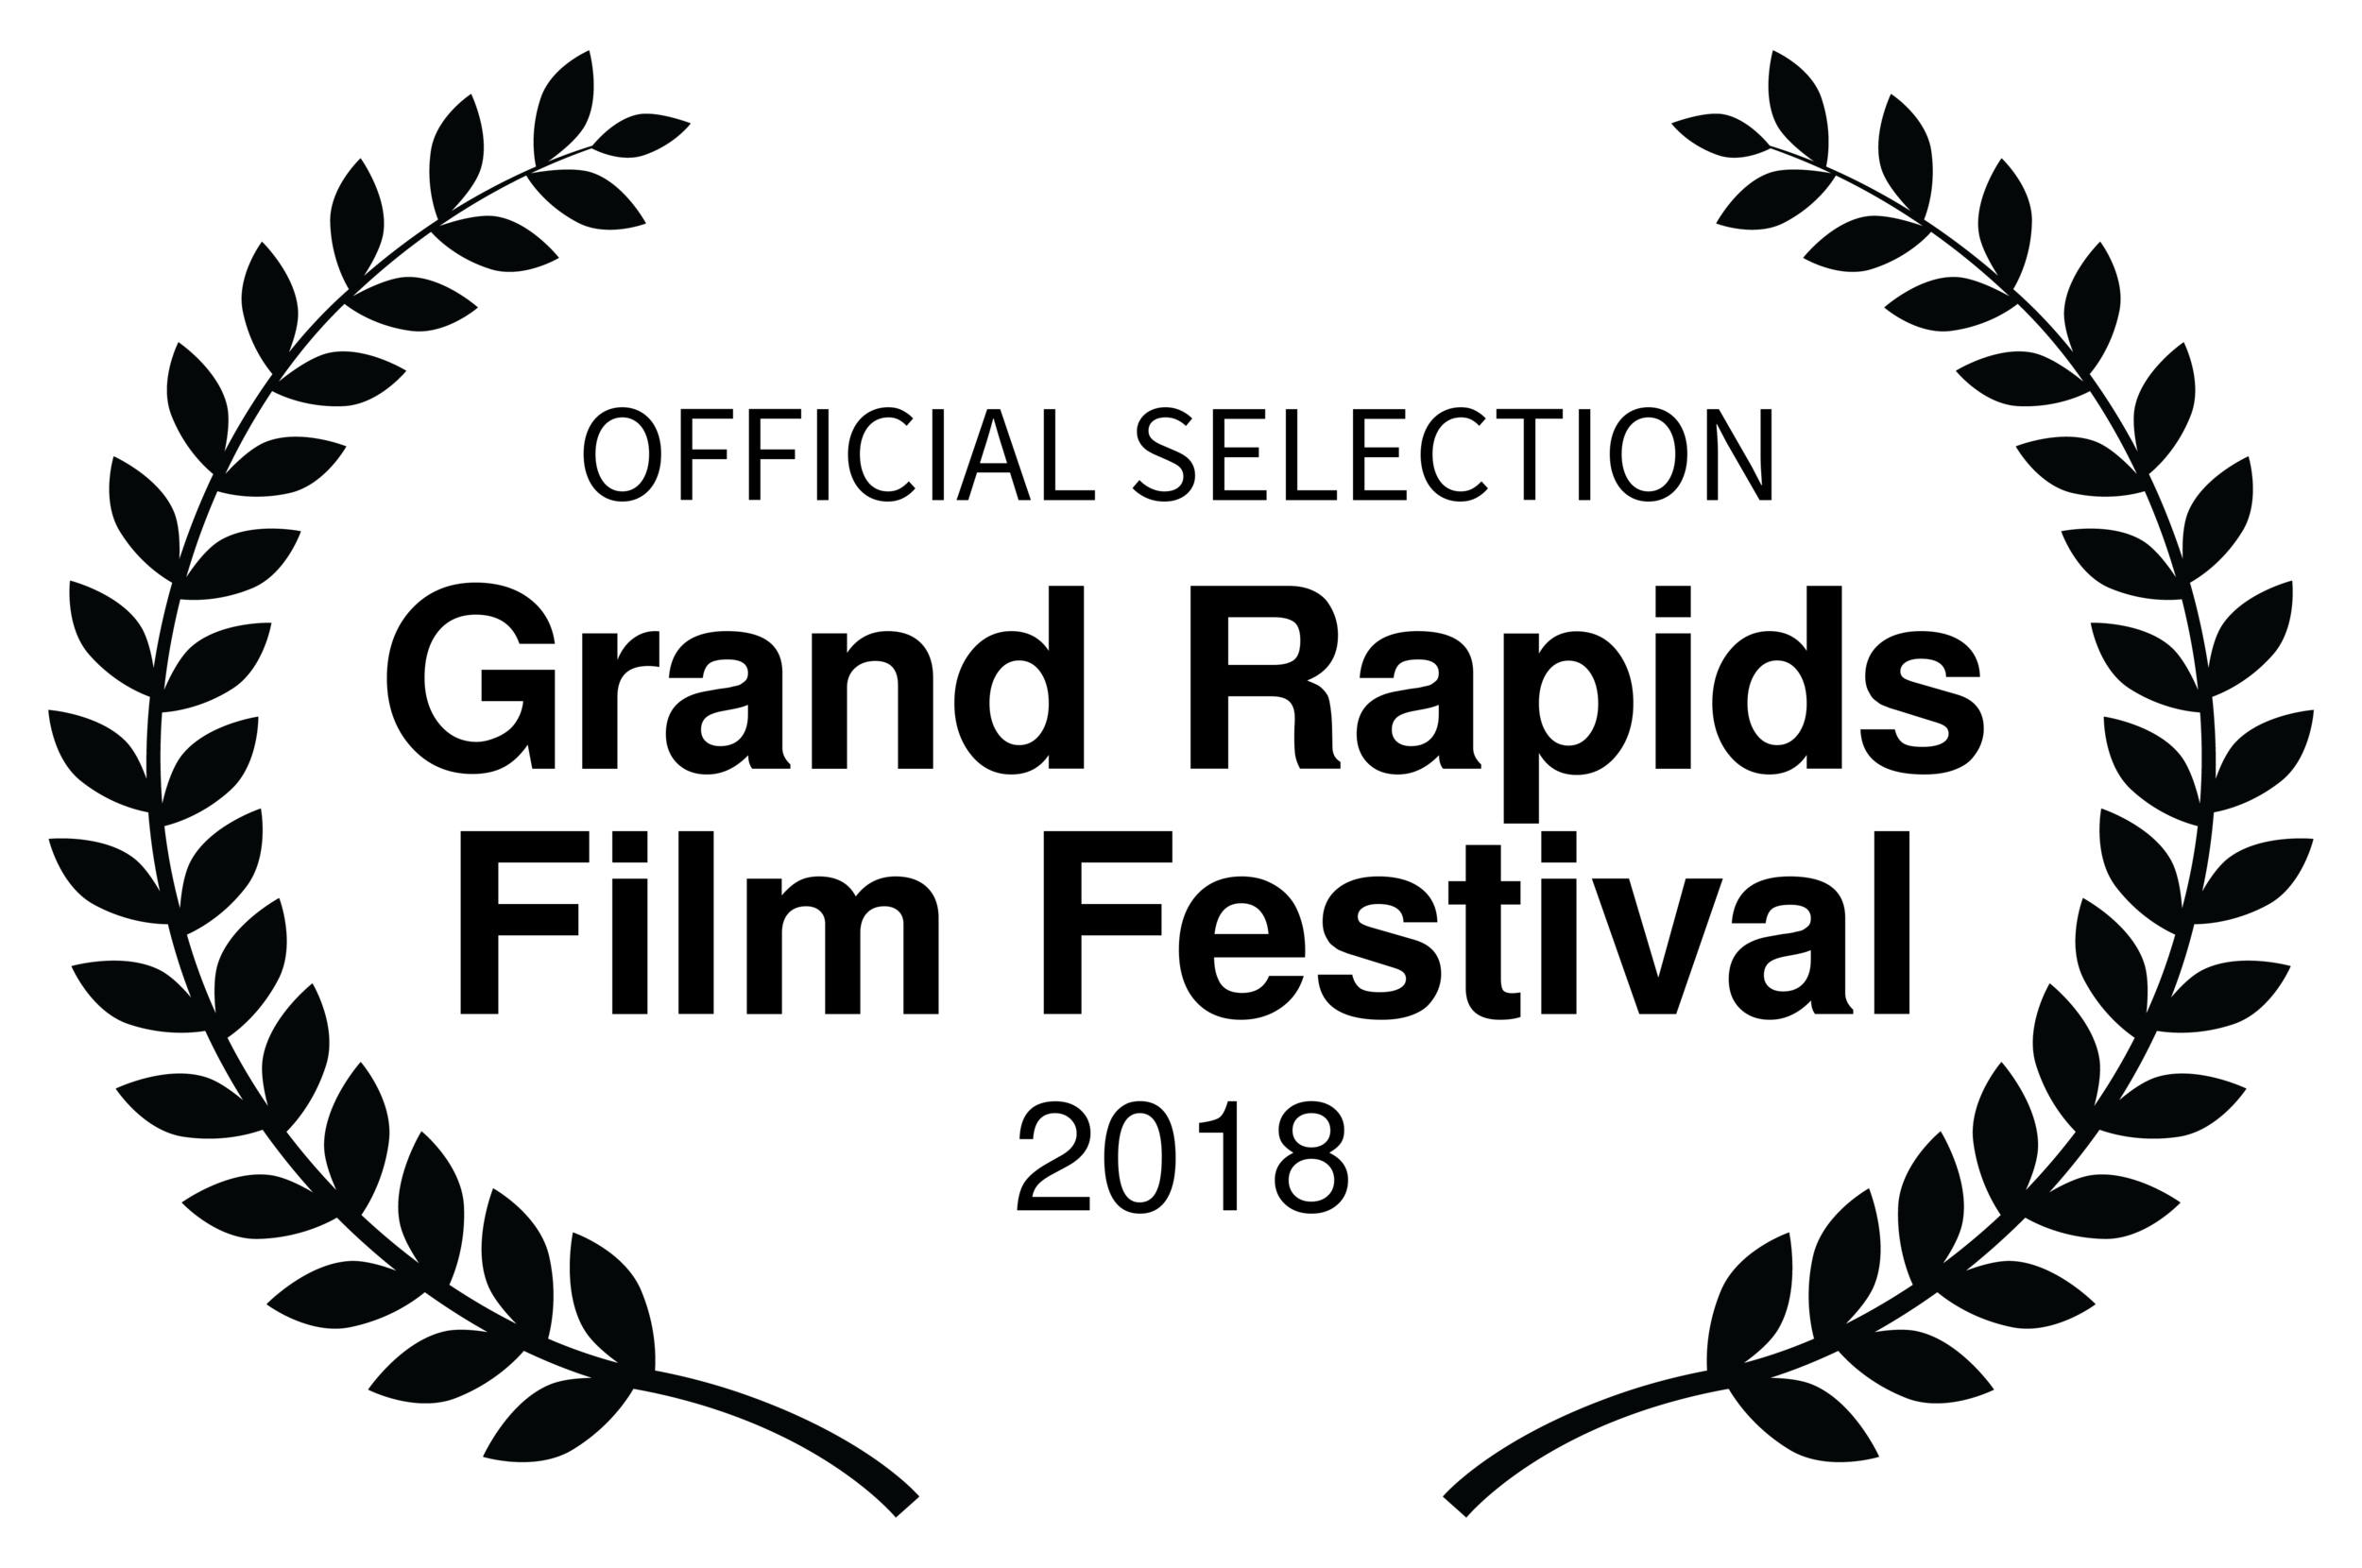 OFFICIALSELECTION-GrandRapidsFilmFestival-2018 (1).png